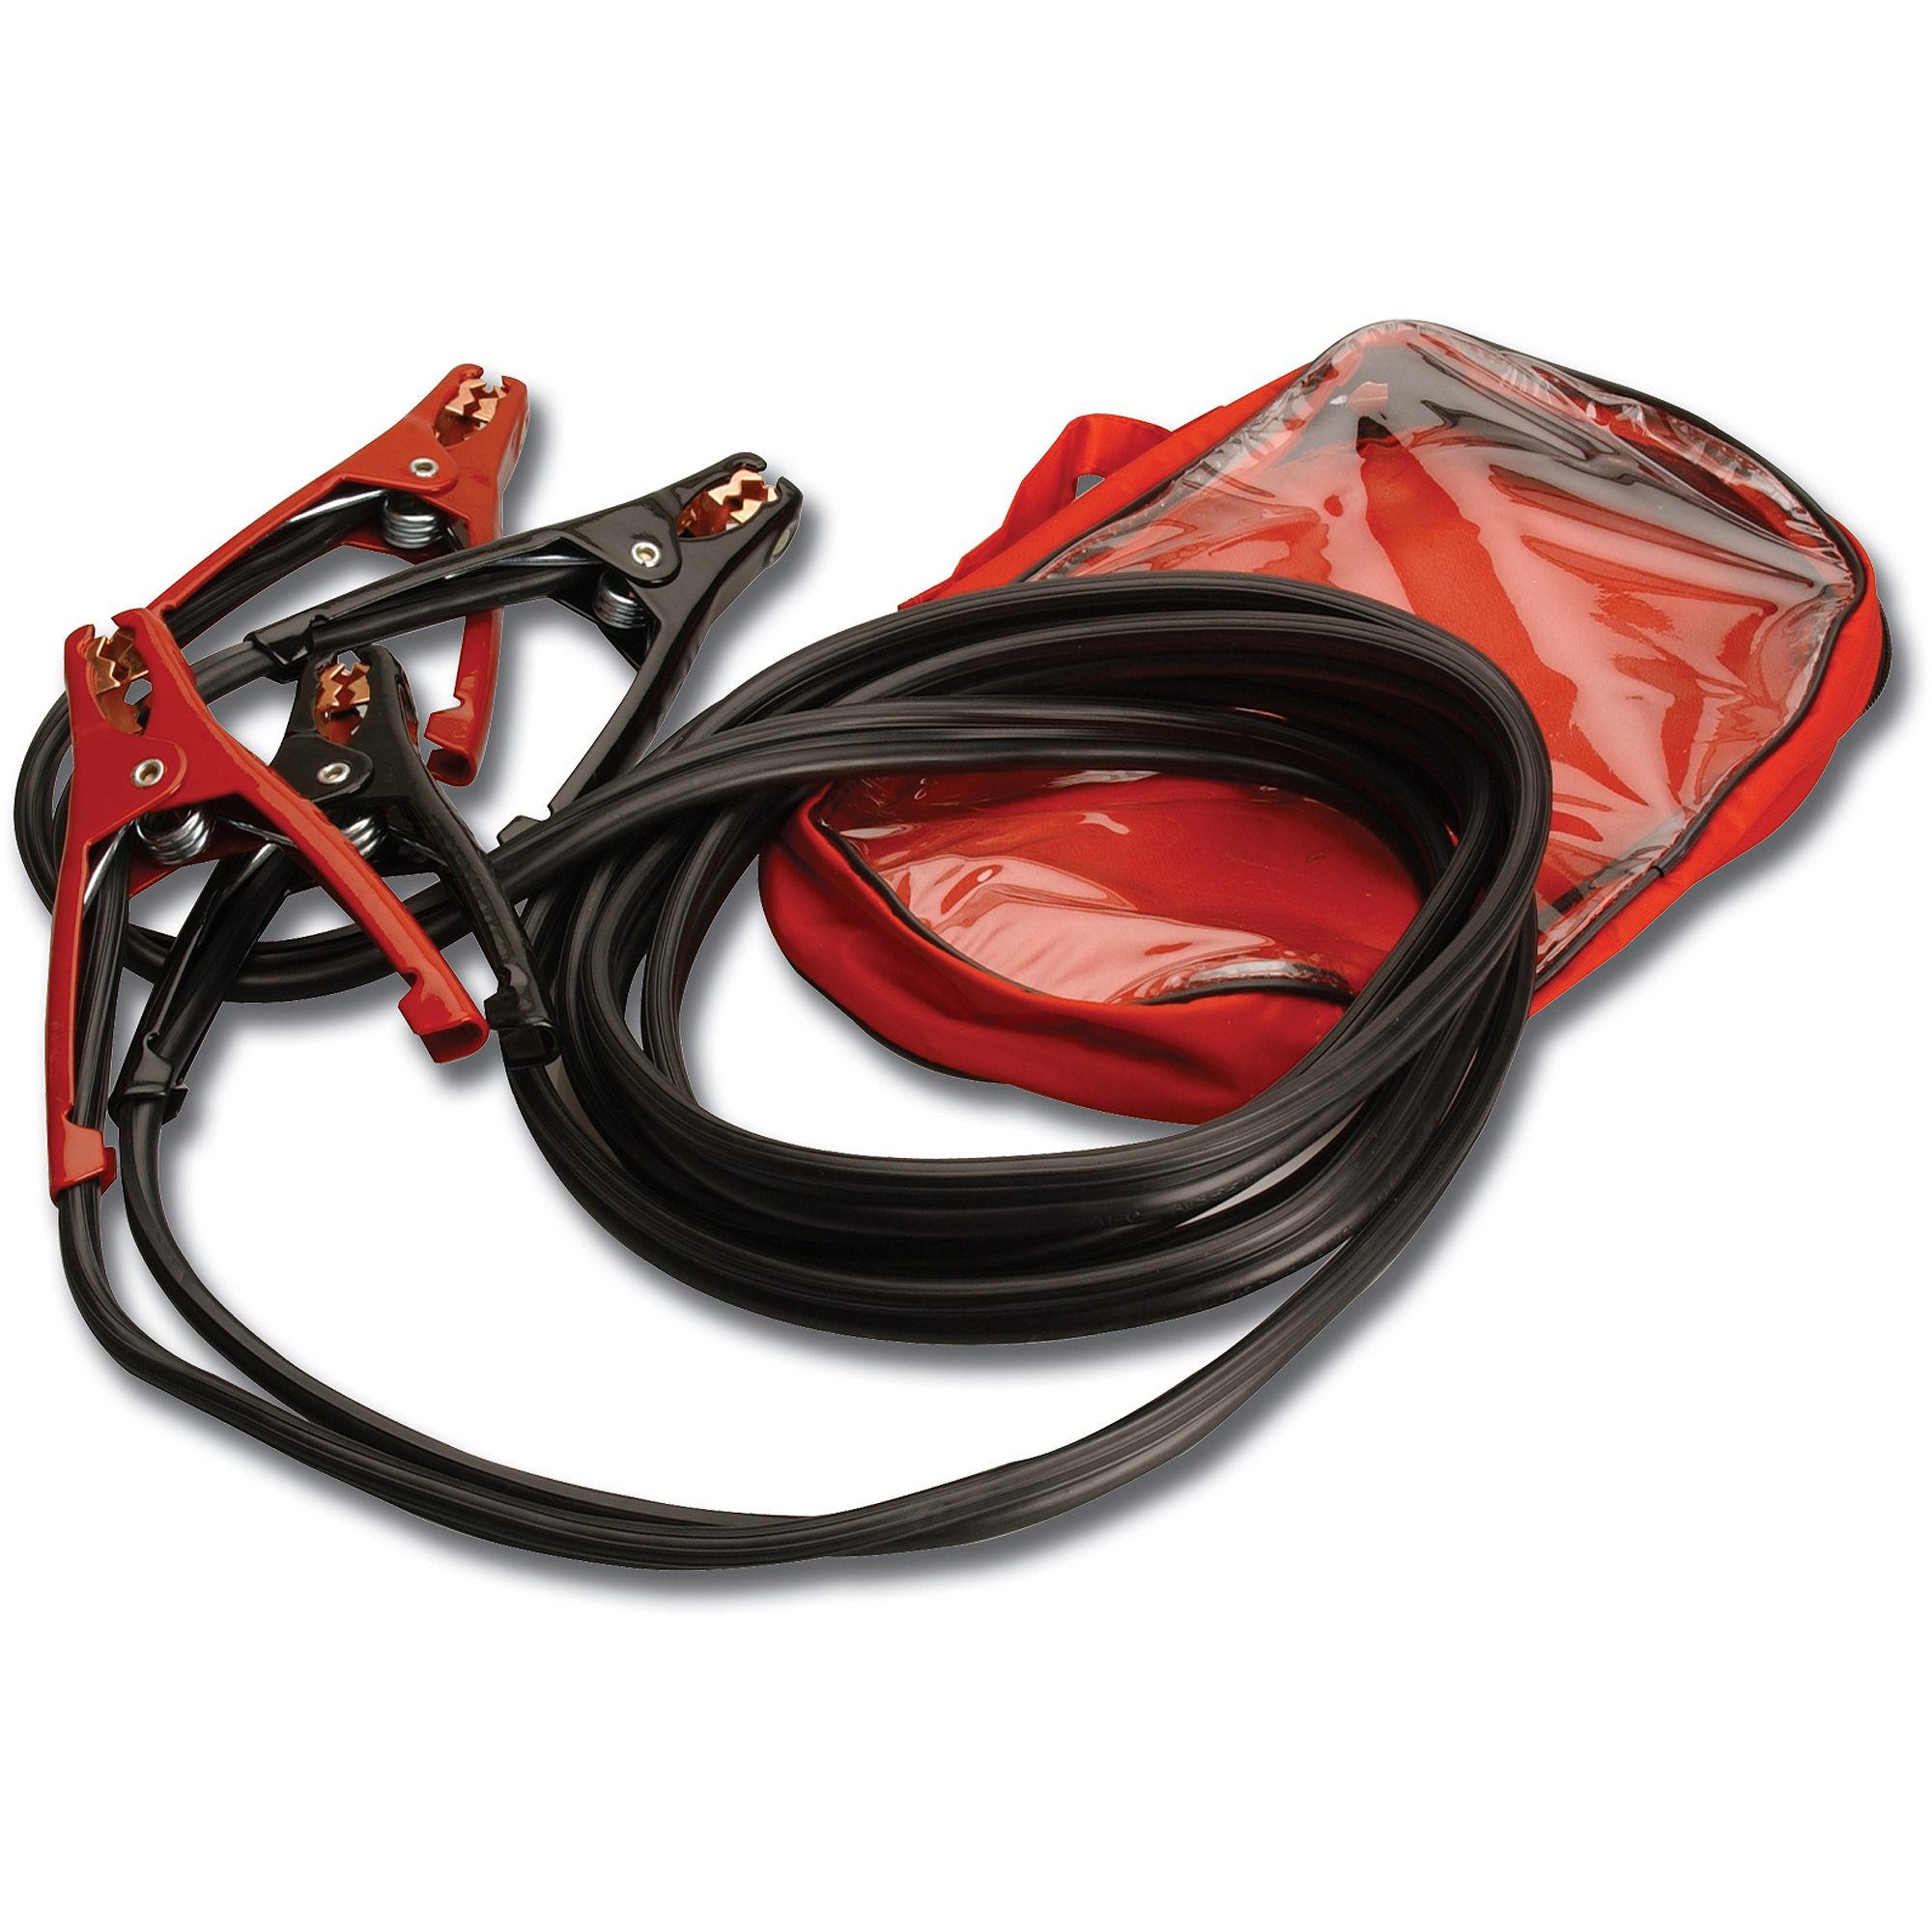 Everstart 08118-77-D8 10-Gauge Top Post and Side Terminal Automotive Booster Cables for Compact Vehicles, 12'